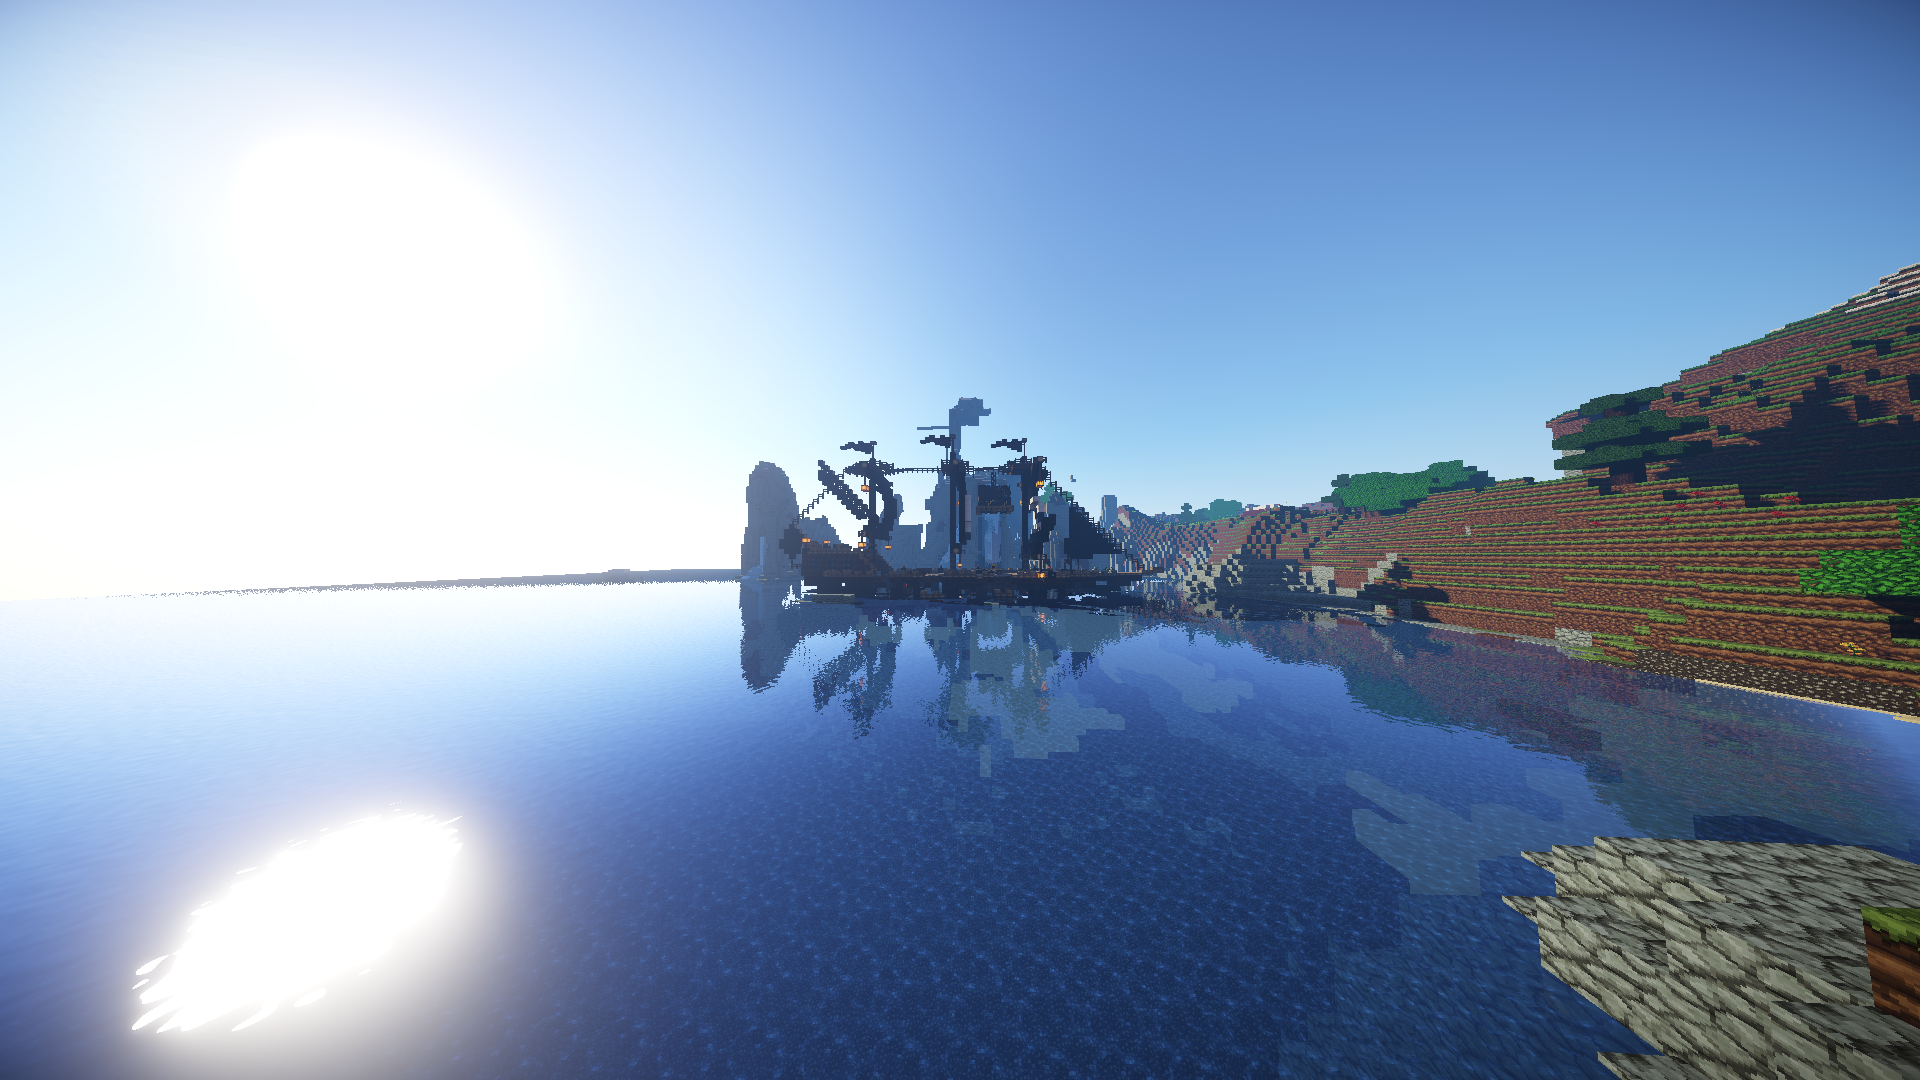 The Old Pirate Cove Minecraft By Louiscraft On Deviantart